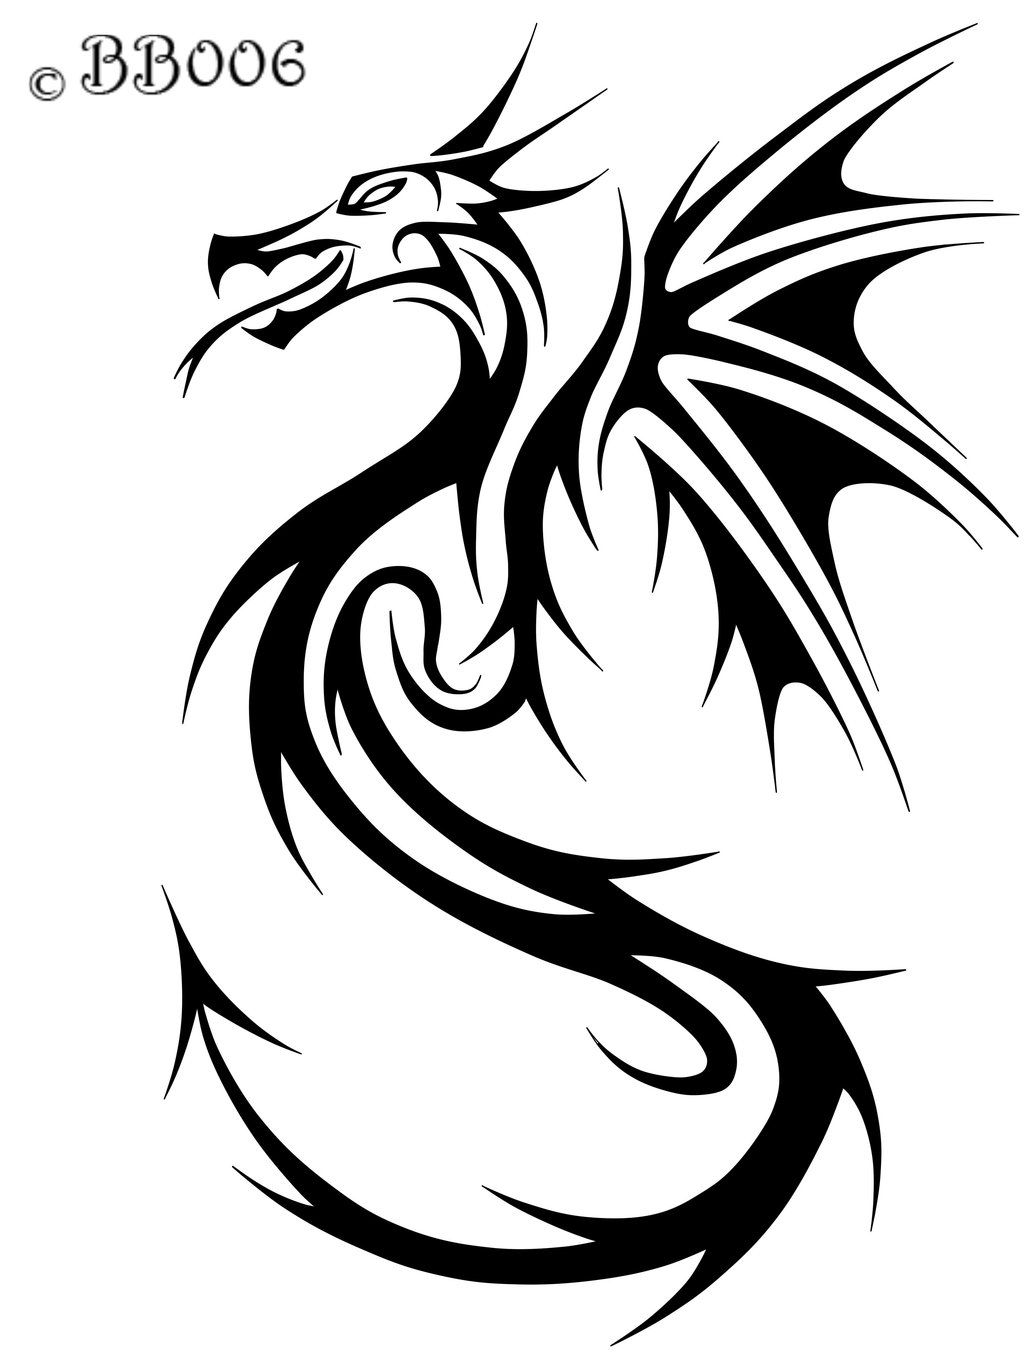 dragon scroll saw ideas pinterest dragons tribal lion and tattoo. Black Bedroom Furniture Sets. Home Design Ideas